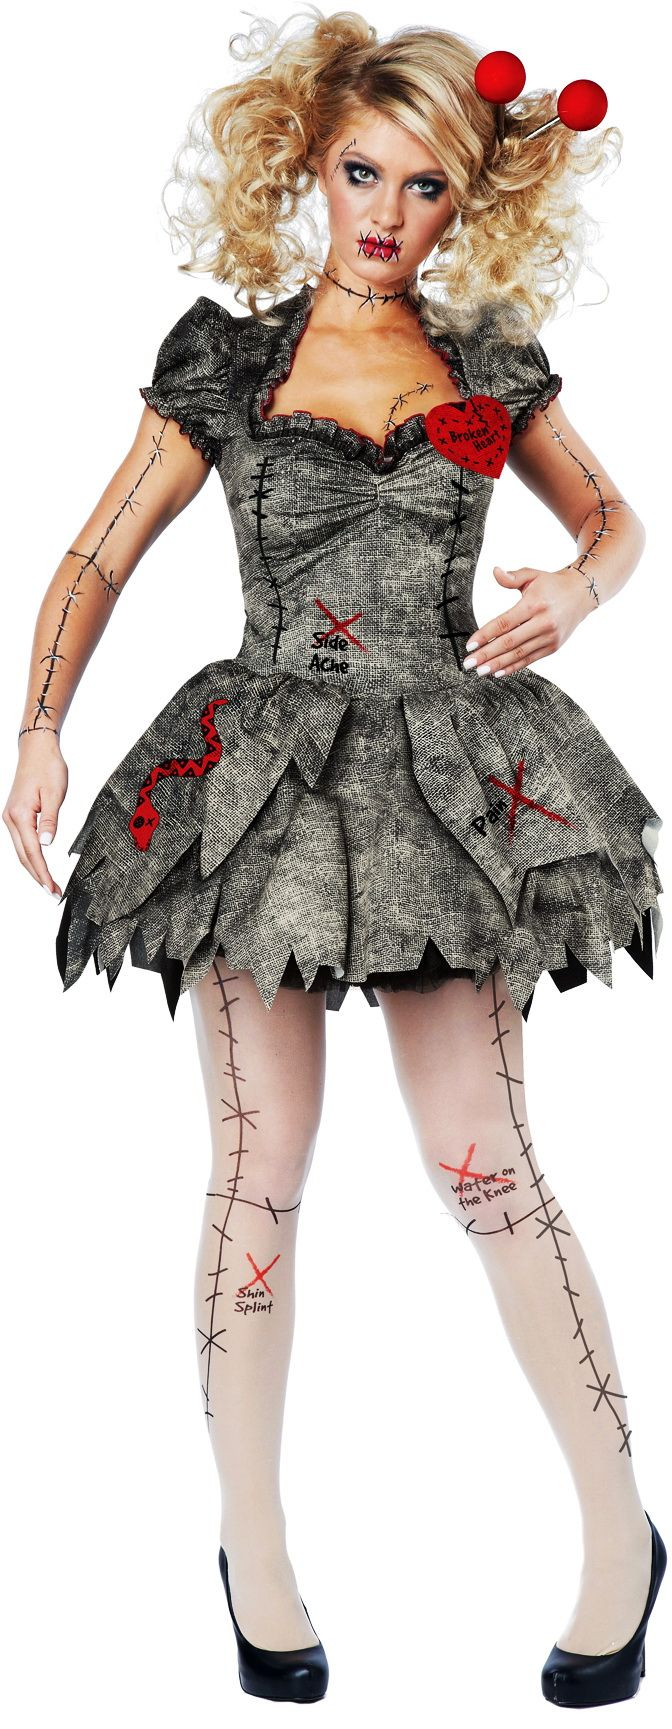 Creepy Pins & Needles Voodoo Outfit Halloween Rag Doll Costume Adult Women …                                                                                                                                                                                 More